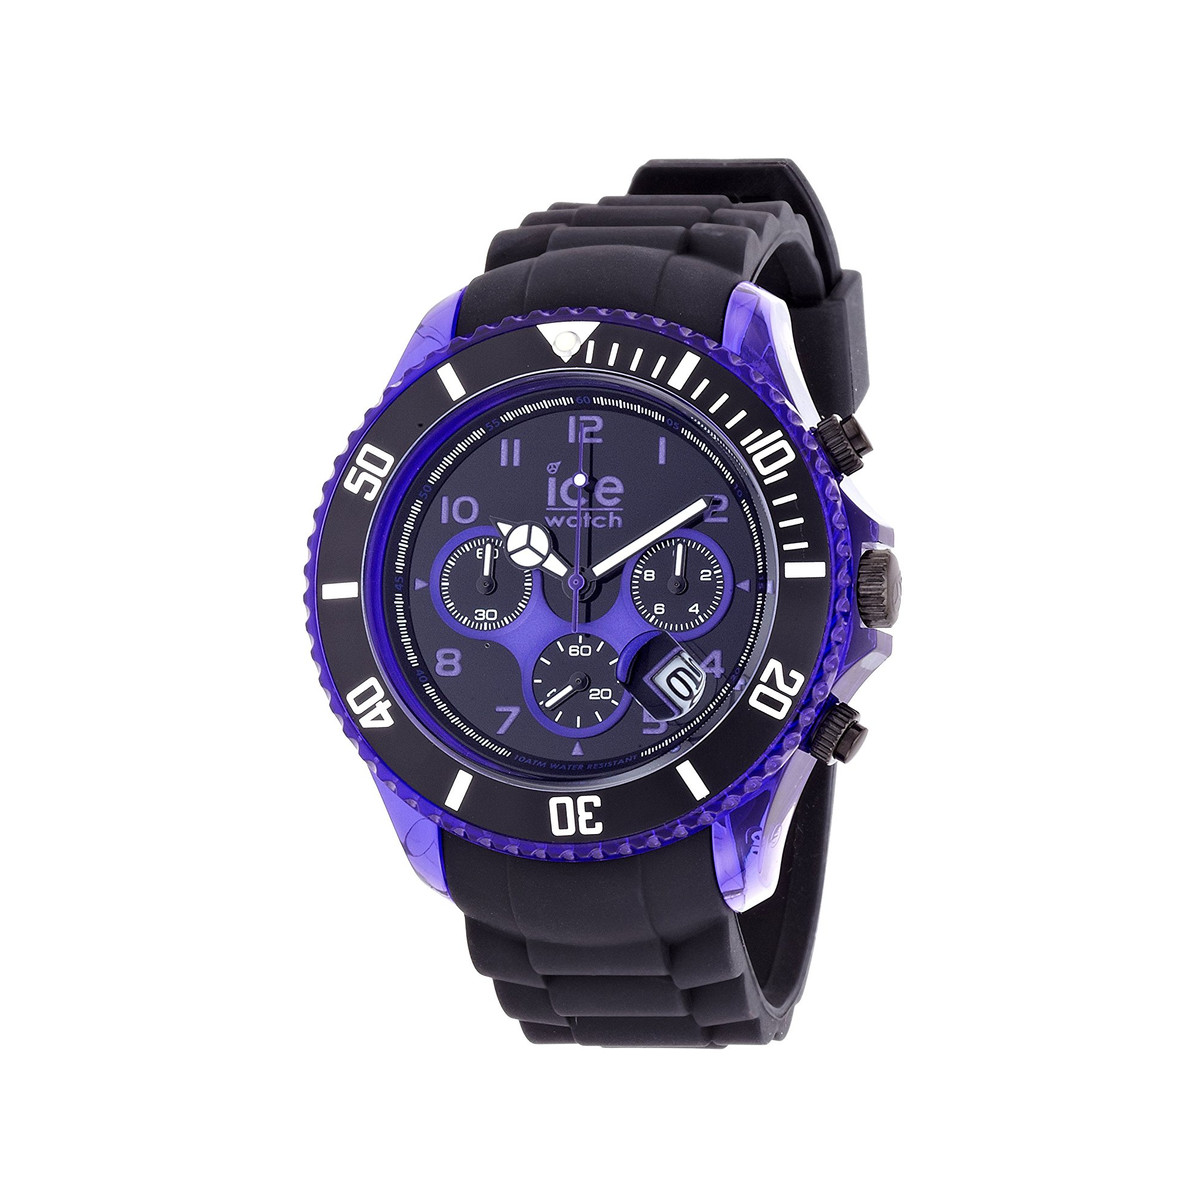 Montre Ice watch homme chronographe silicone noir